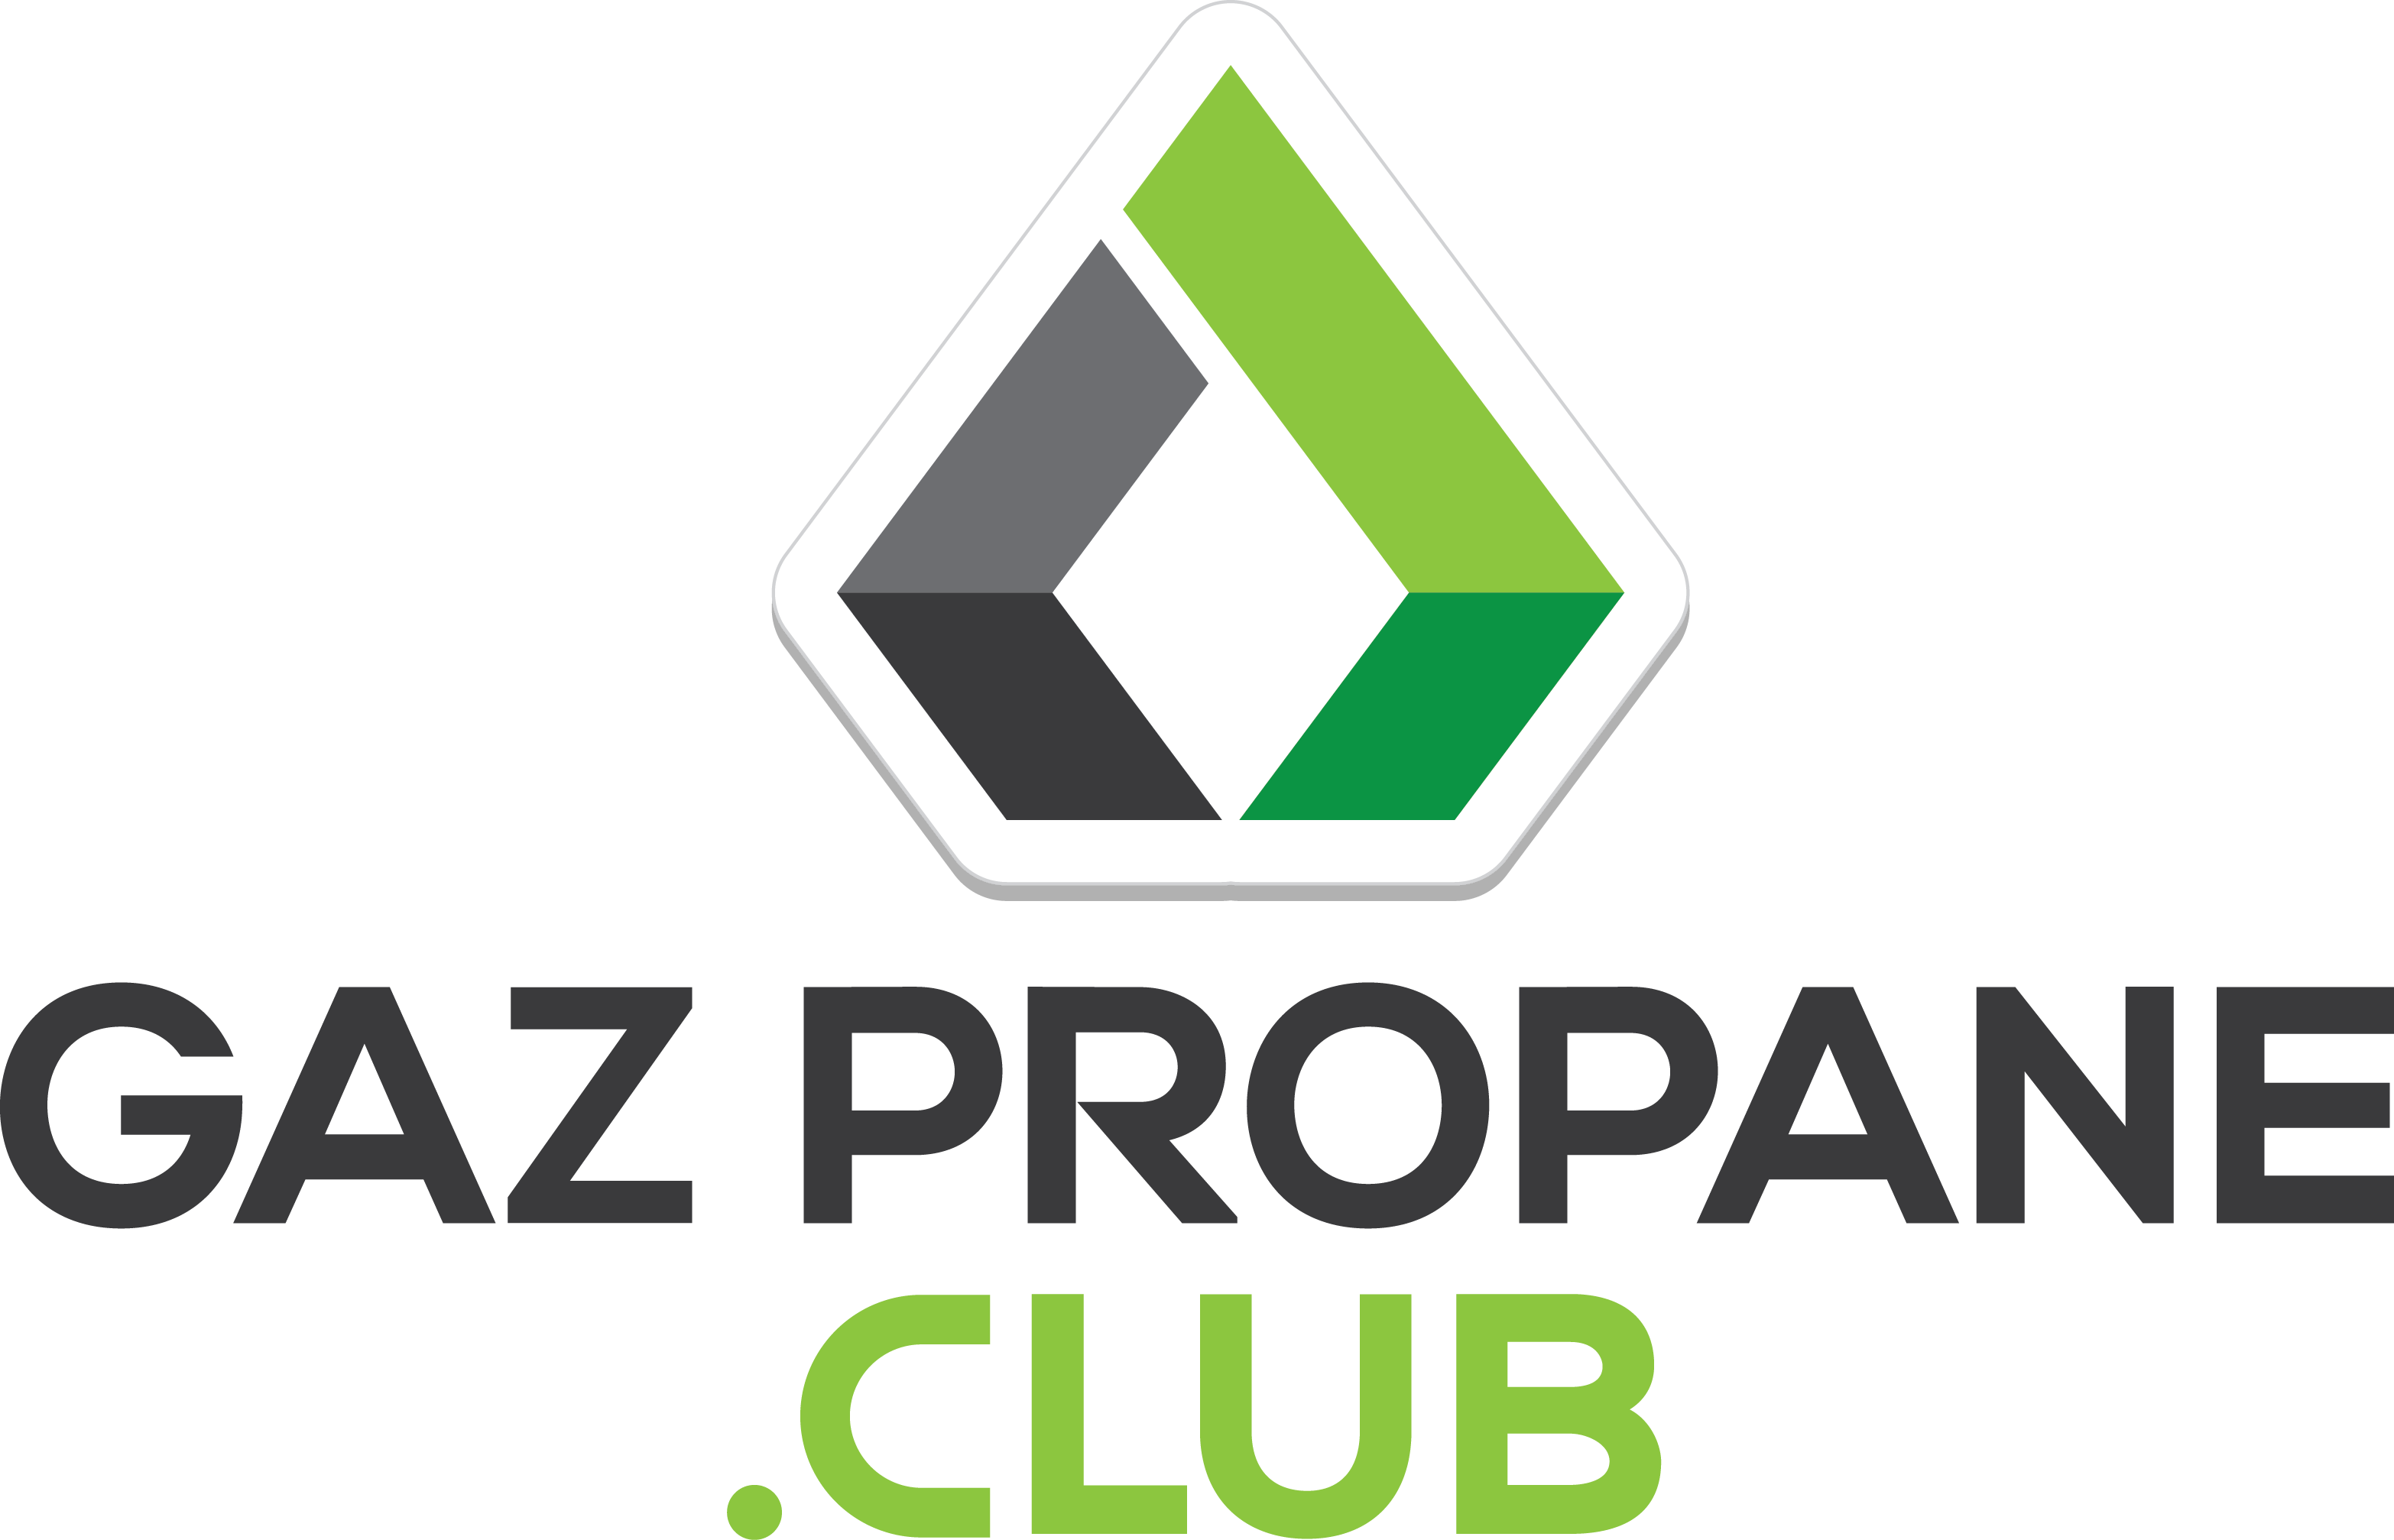 Gaz Propane.Club